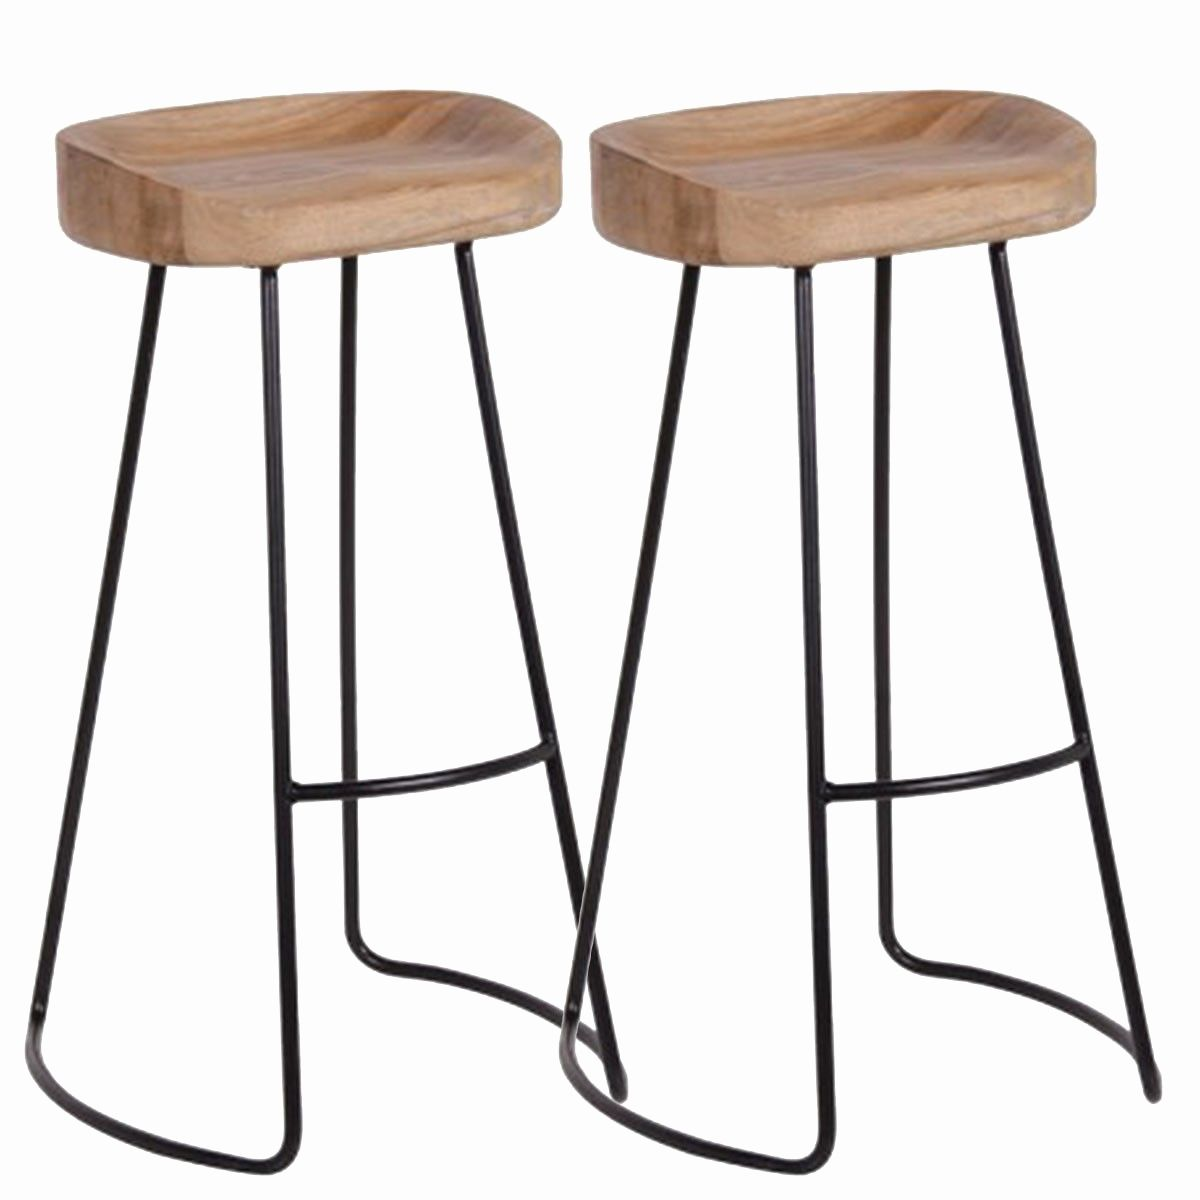 Saddle Seat Bar Stool In 2020 Bar Stools Metal Bar Stools Industrial Bar Stools